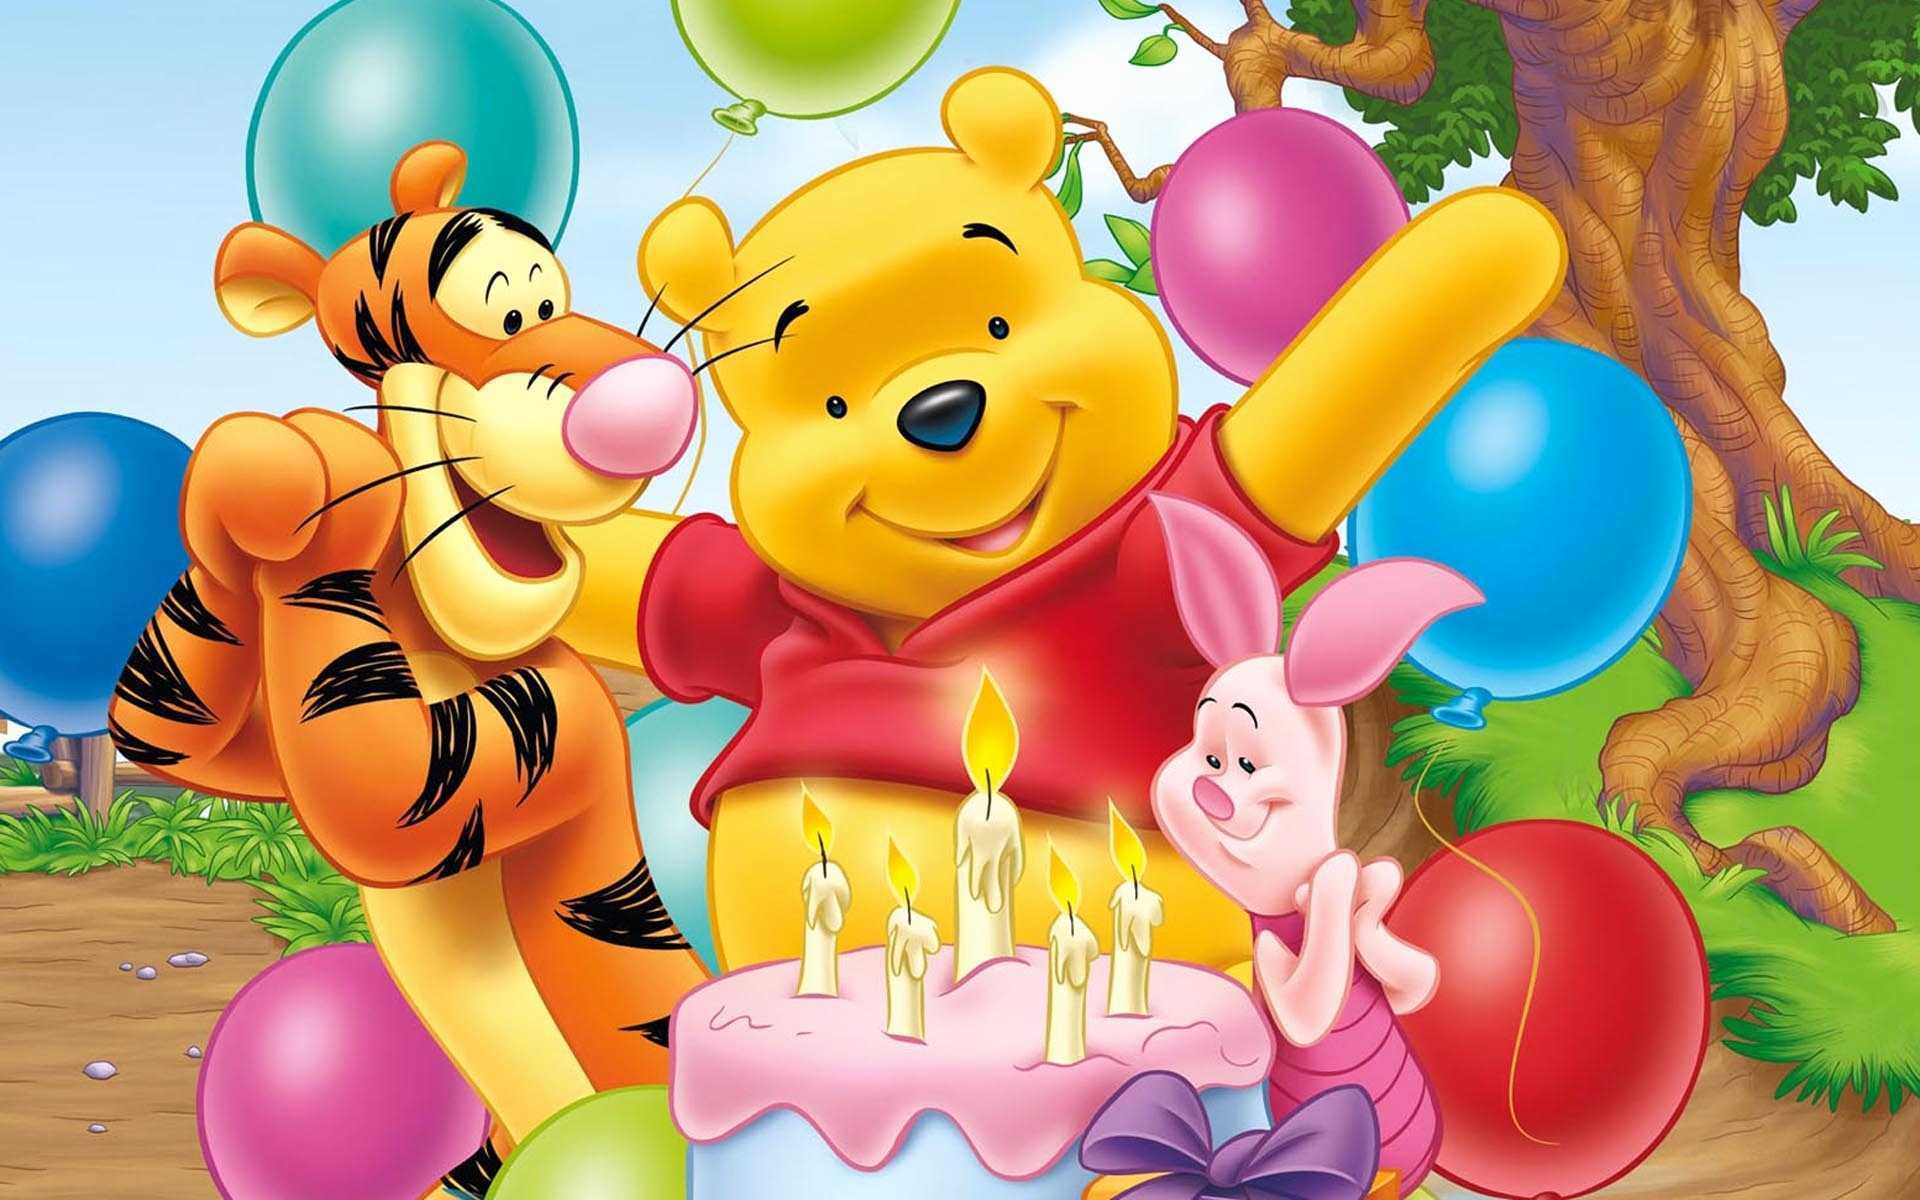 winnie the pooh happy birthday ; winnie-the-pooh-happy-birthday-images-lovely-happy-eeyore-wallpaper-of-winnie-the-pooh-happy-birthday-images